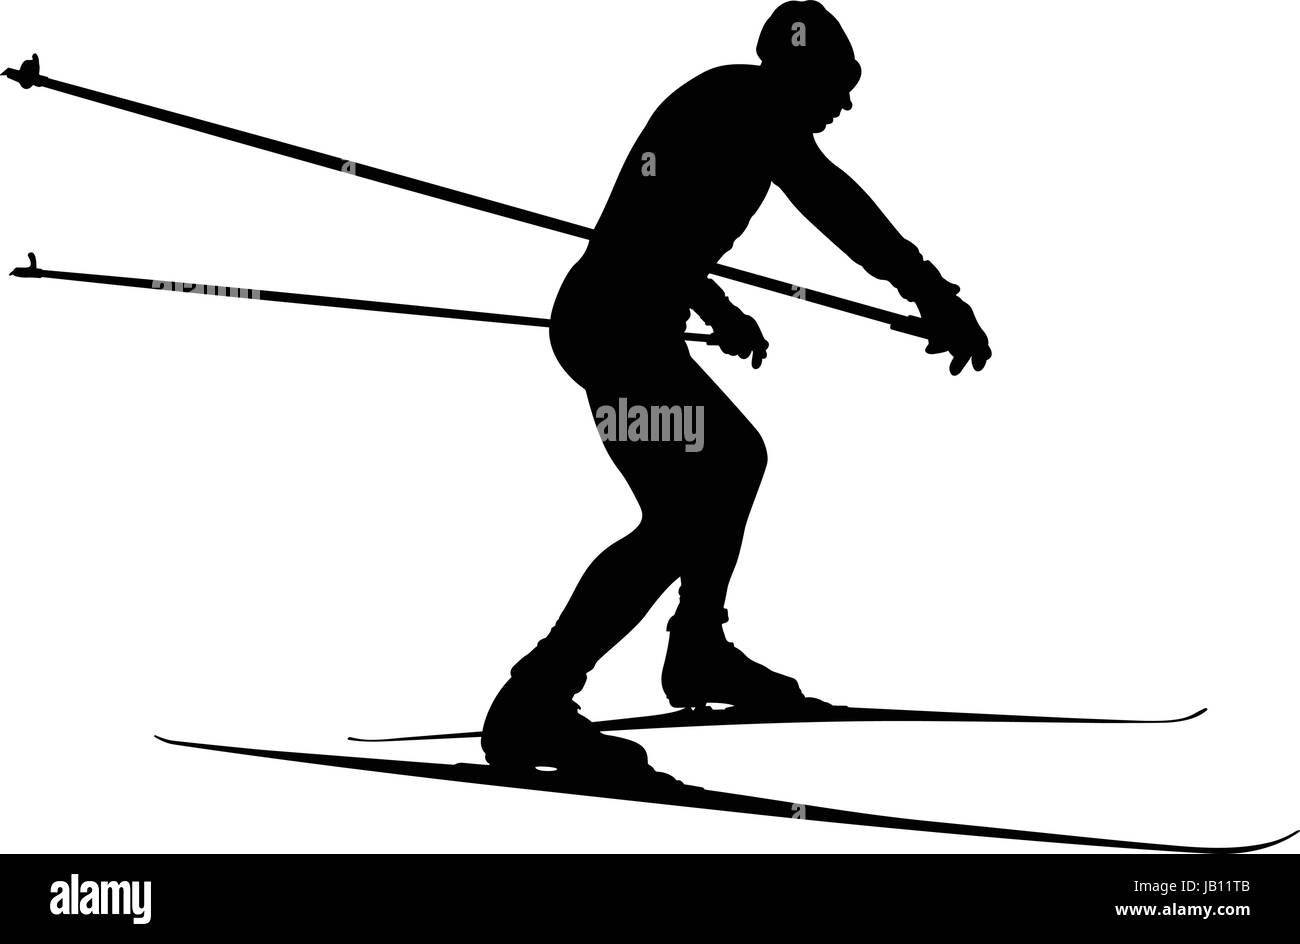 Male Athlete Skier In Cross Country Skiing Vector Illustration